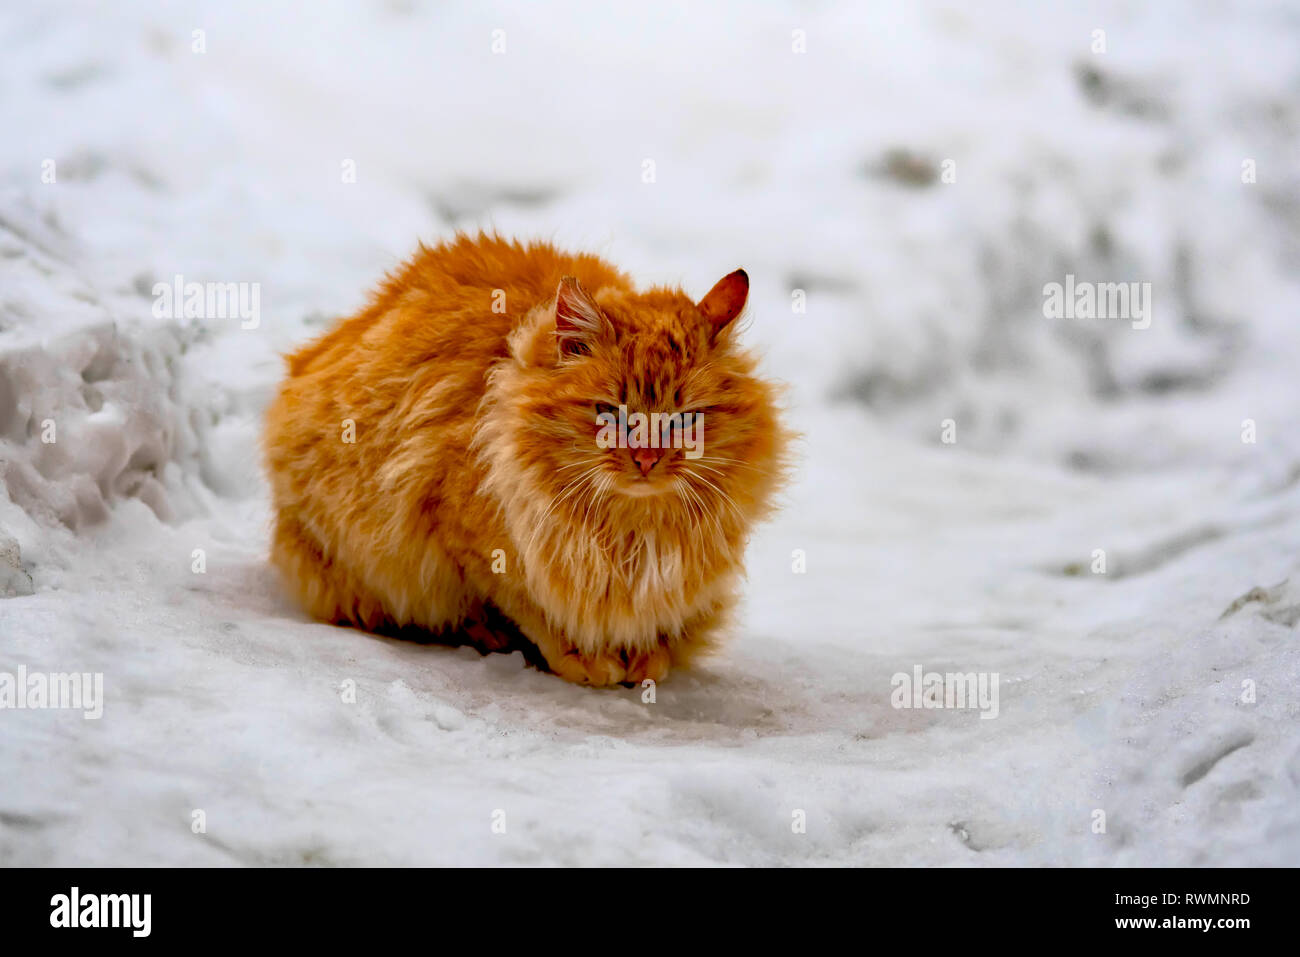 street homeless red cat sitting on the snow - Stock Image